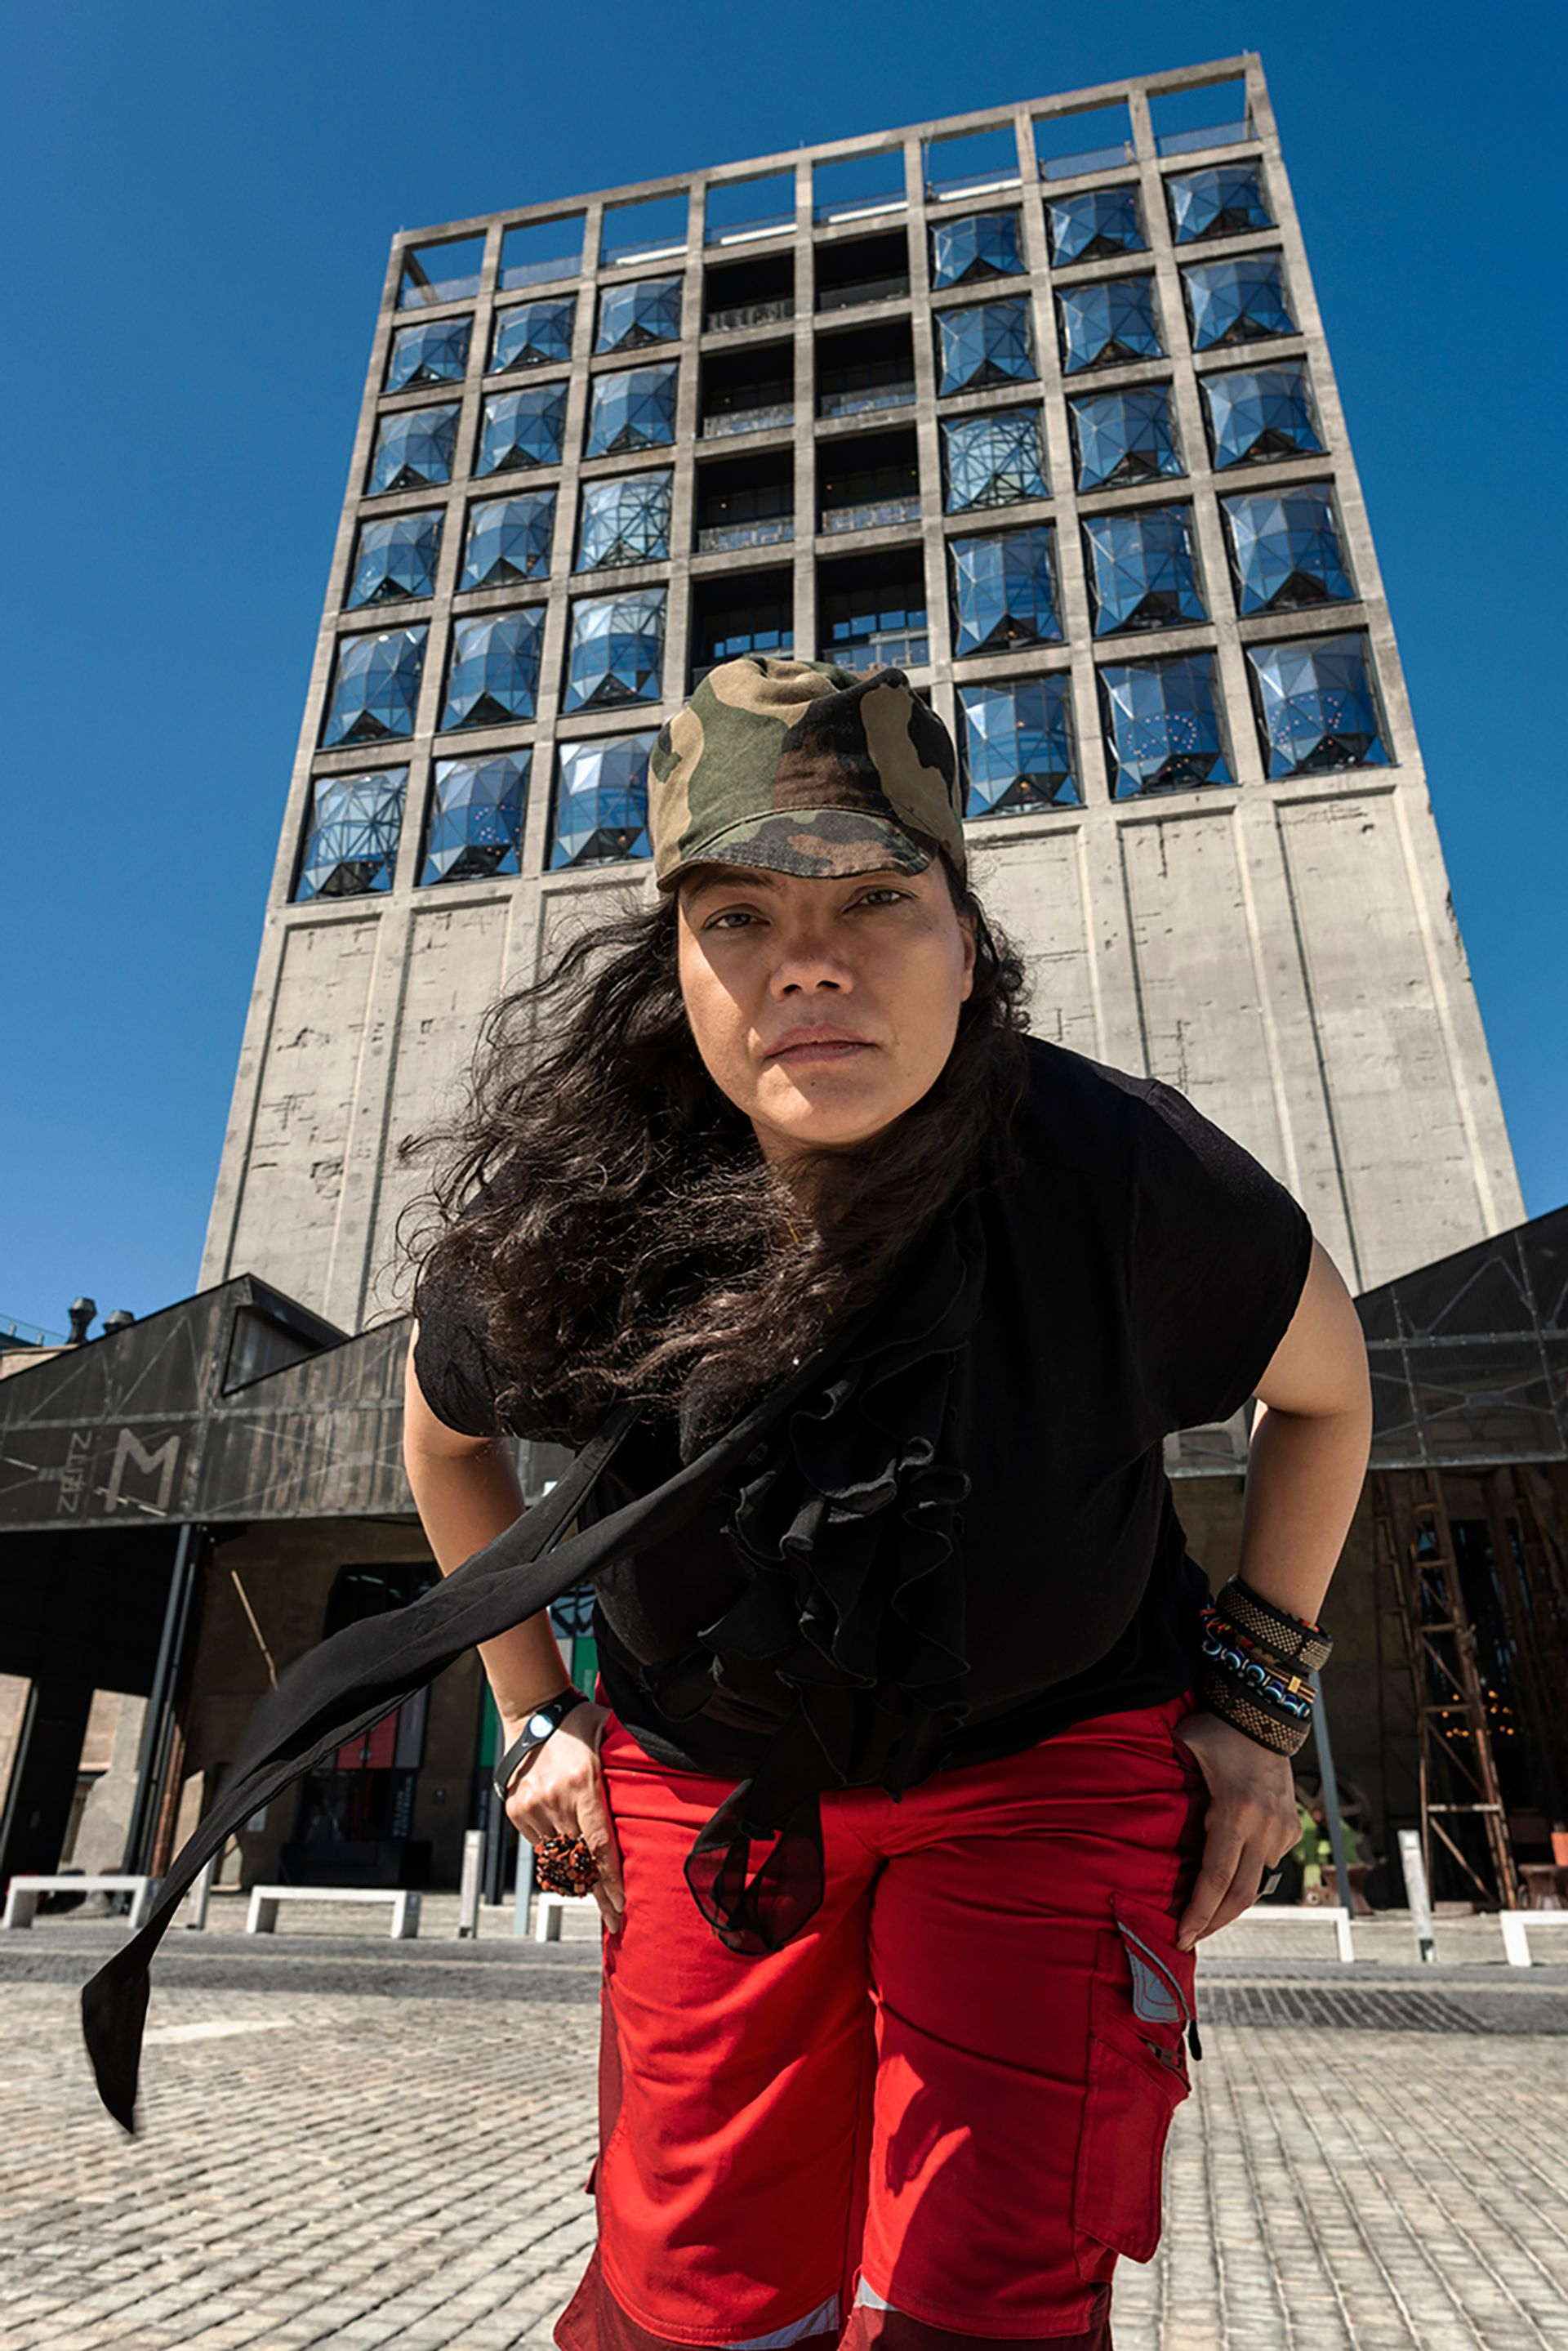 The South African artist Tracey Rose Courtesy of ZEITZ MOCAA